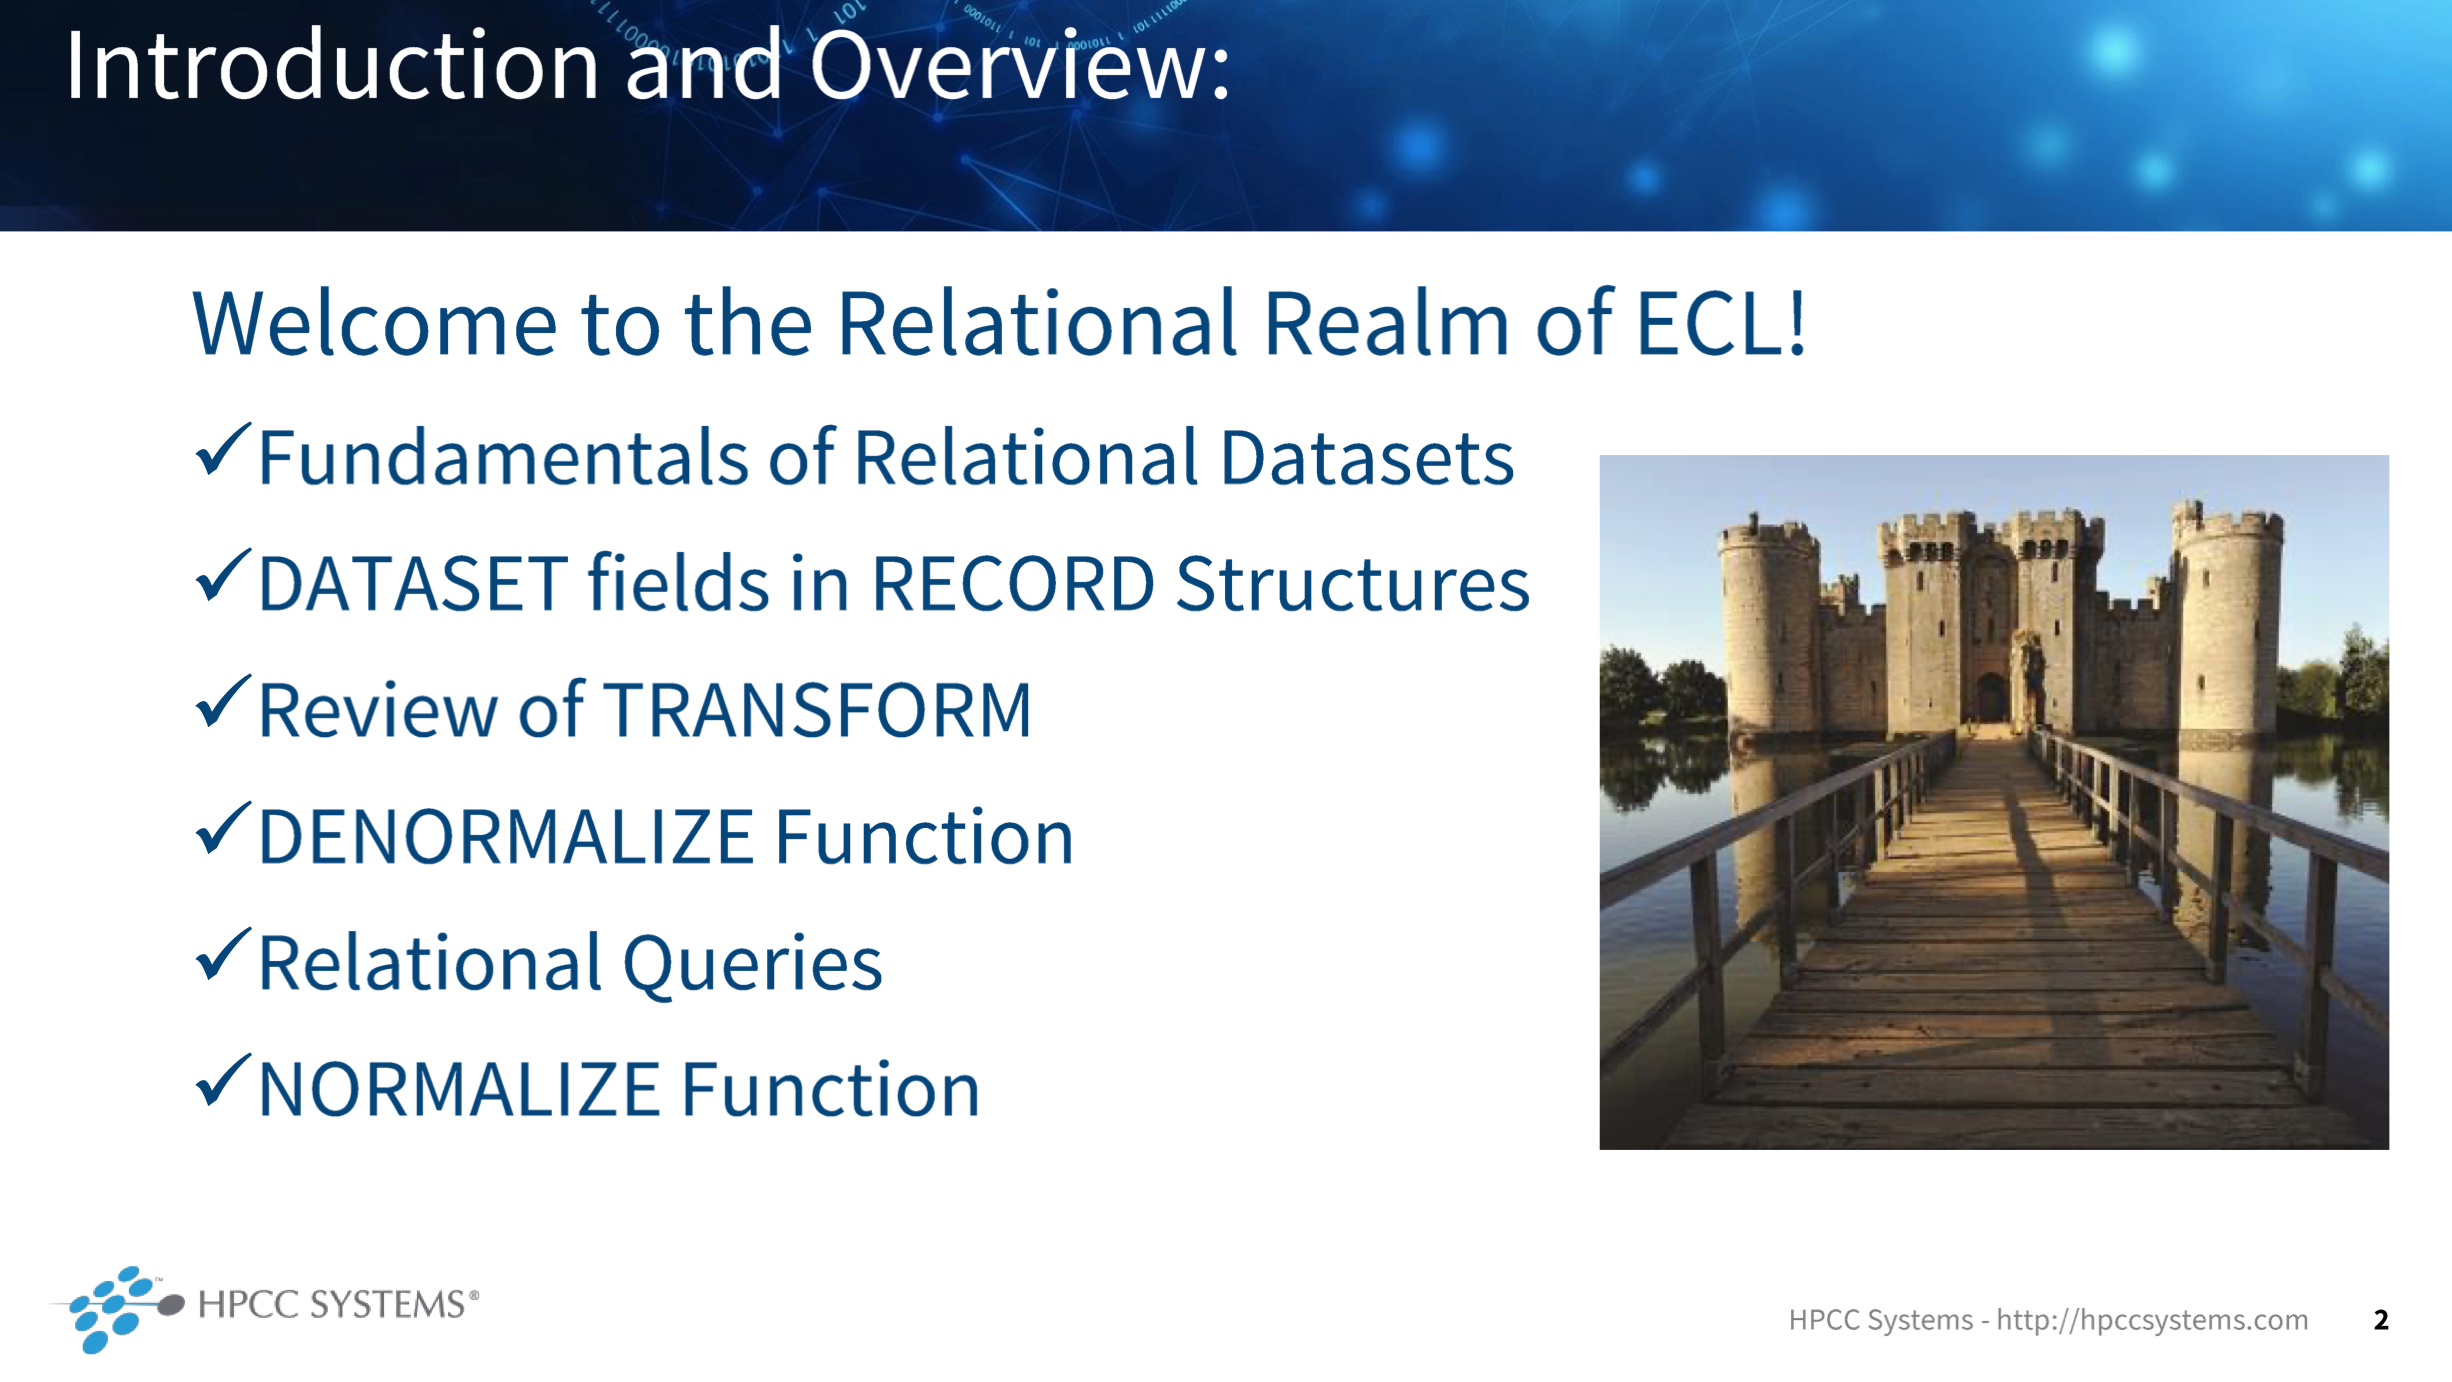 Image Showing the course outline for The Relational Realm